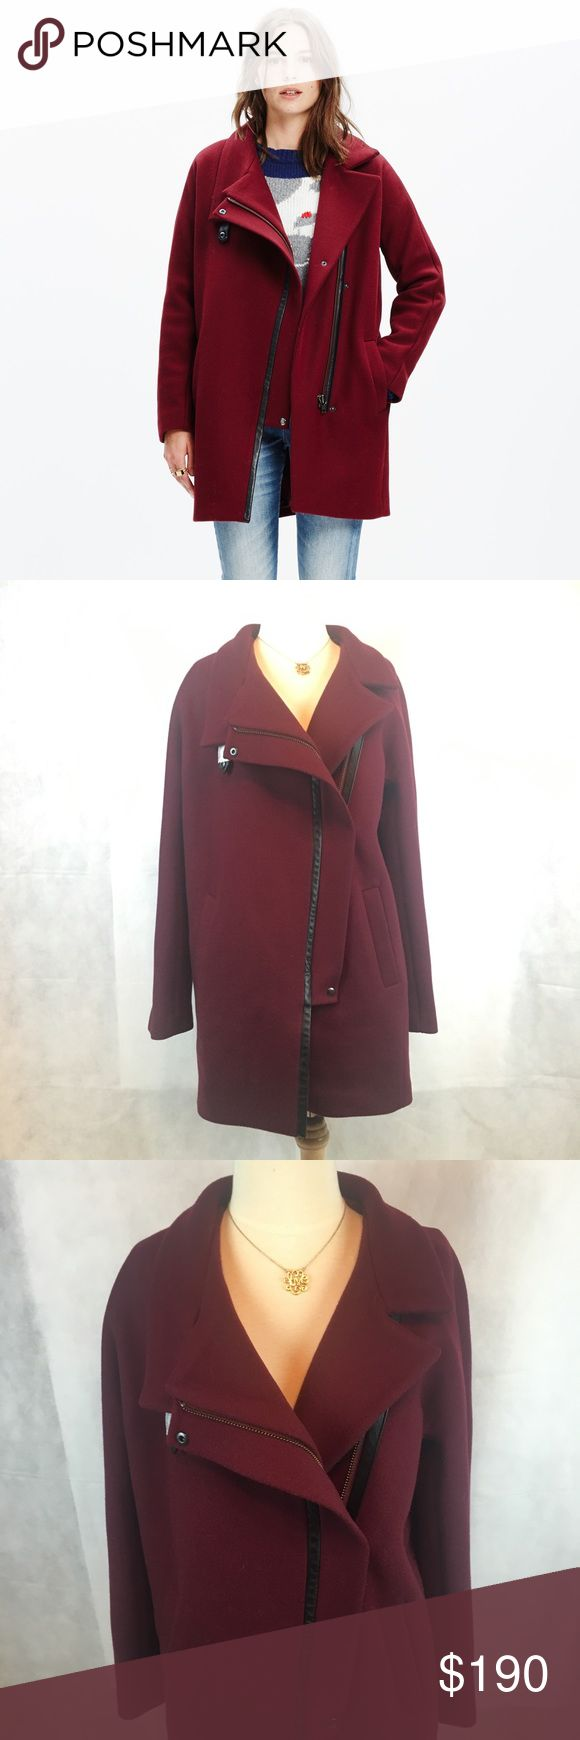 Madewell City Grid Coat Burgundy New with tags City Grid coat size 6, fits like a medium. Could also fit a small as a more oversized look. Burgundy color, never worn. In excellent condition! Leather trim and zipper details. Can be overlapped for colder weather. Madewell Jackets & Coats